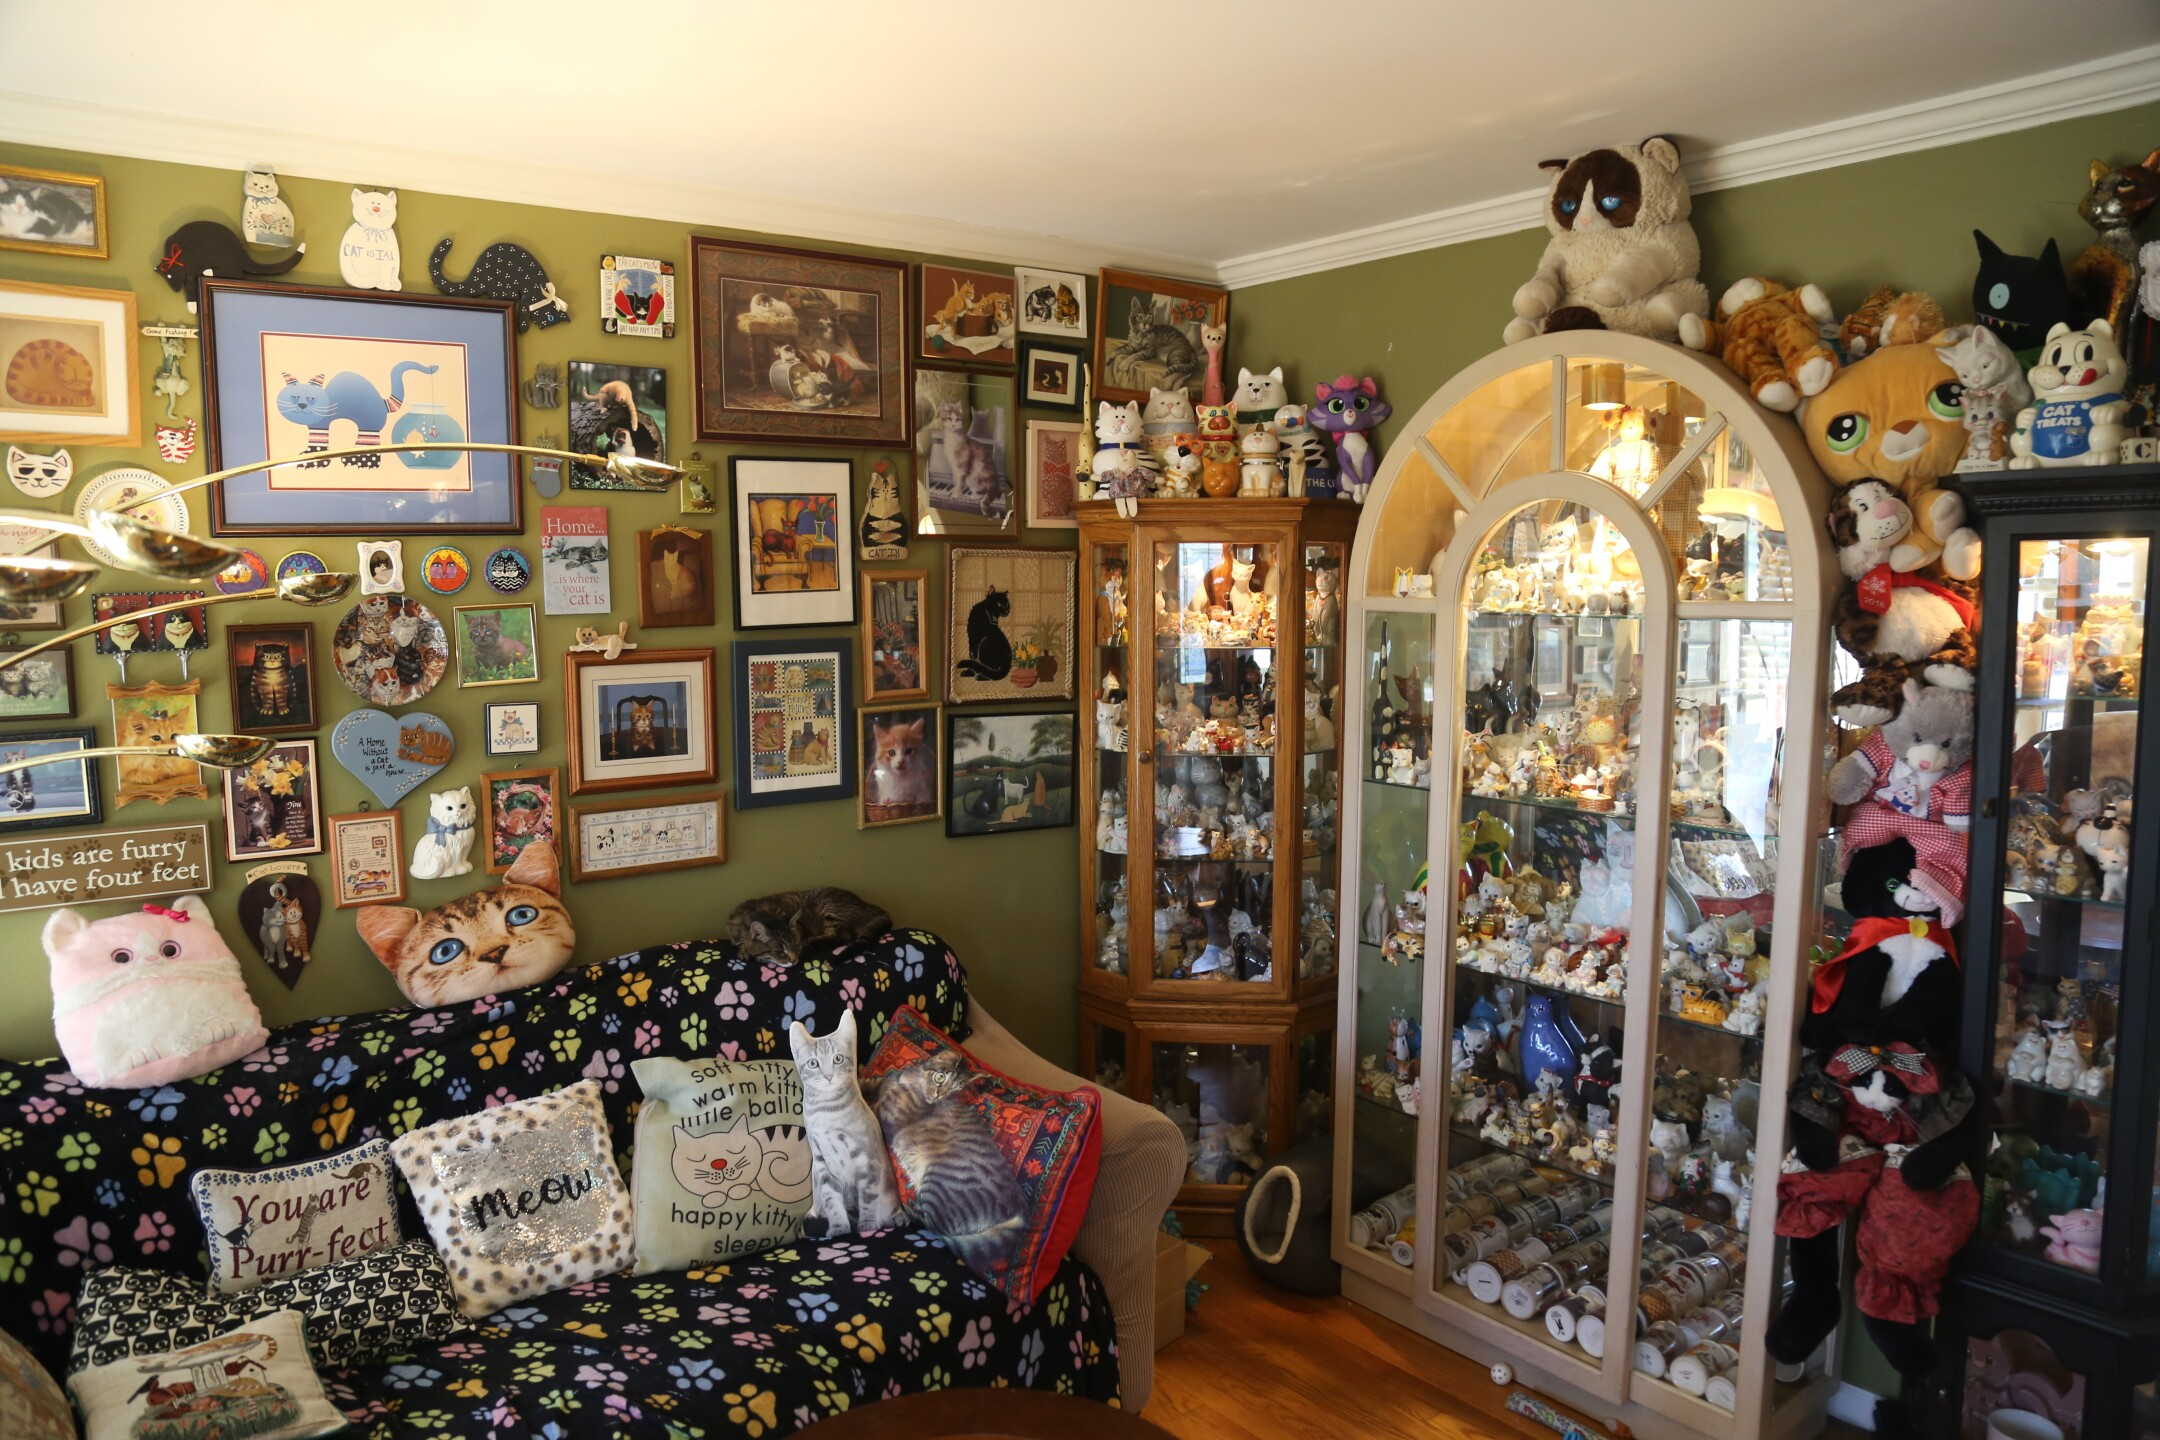 You wouldn't believe it based on how little space there is for more decorating, but the Menomonee Falls couple is still collecting art. They plan on putting it on the ceiling.